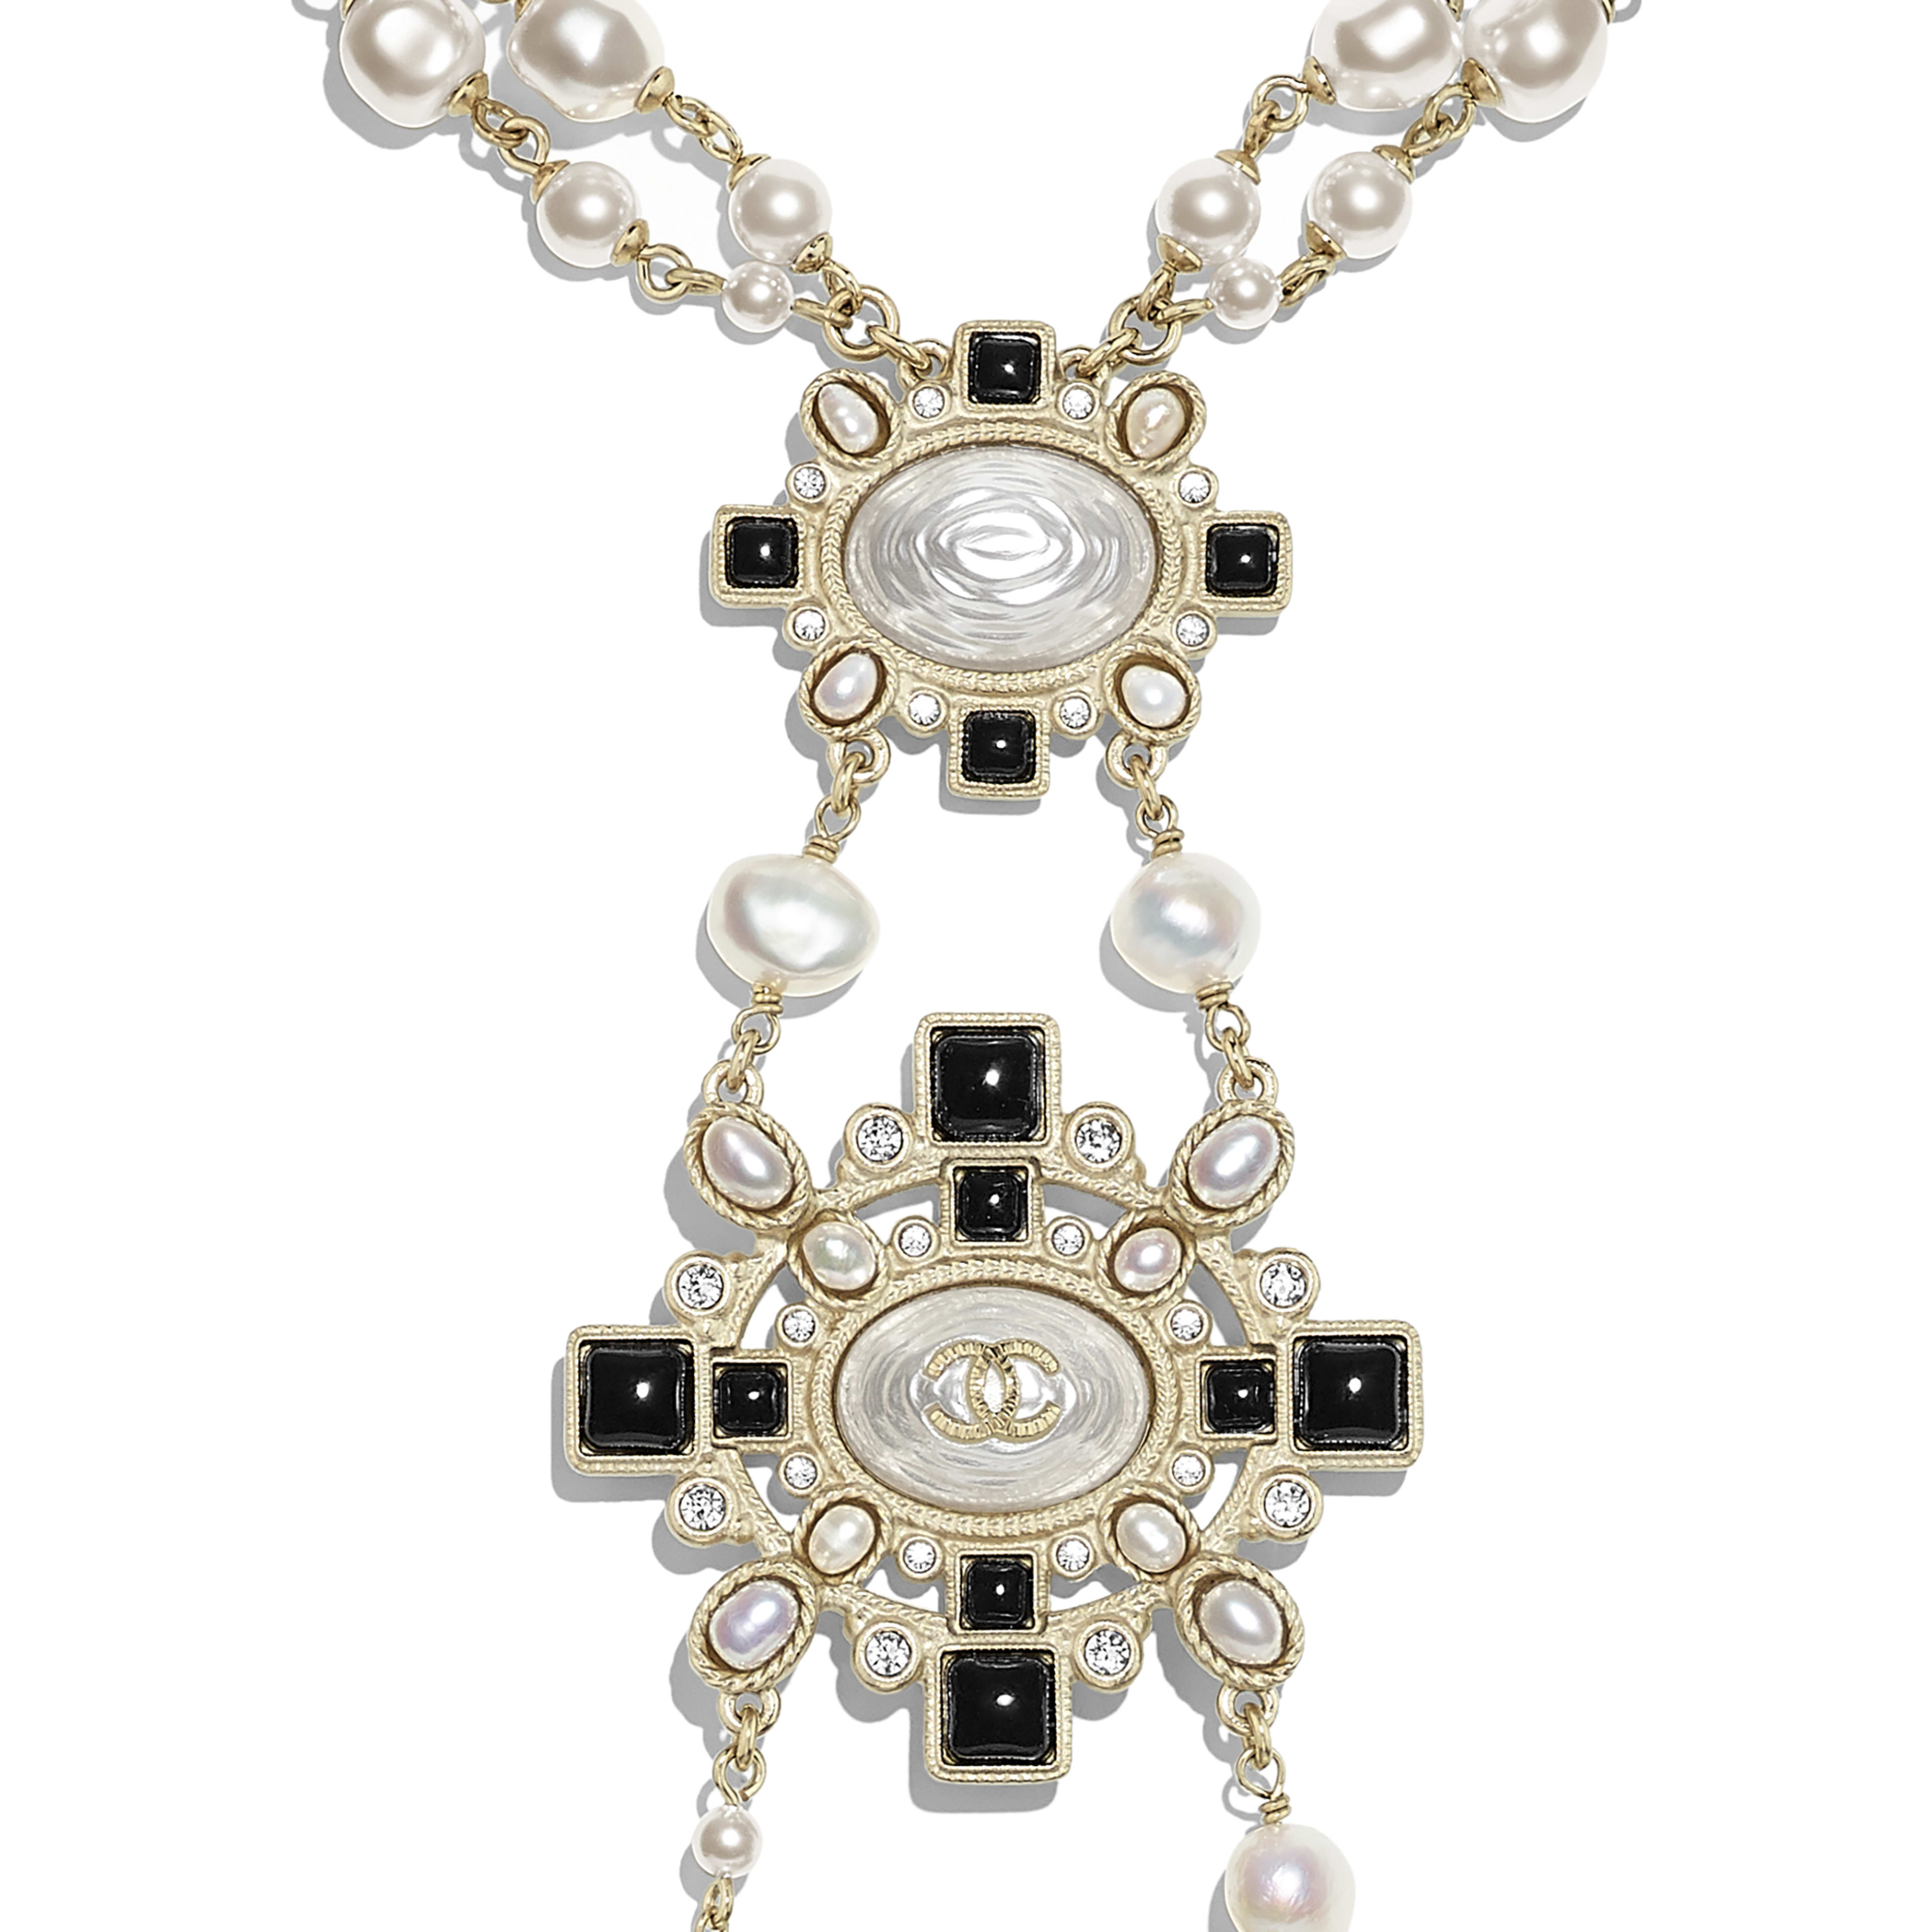 Necklace - Gold, Pearly White, Black & Crystal - Metal, Cultured Fresh Water Pearls, Glass Pearls, Diamanté & Resin - Other view - see full sized version